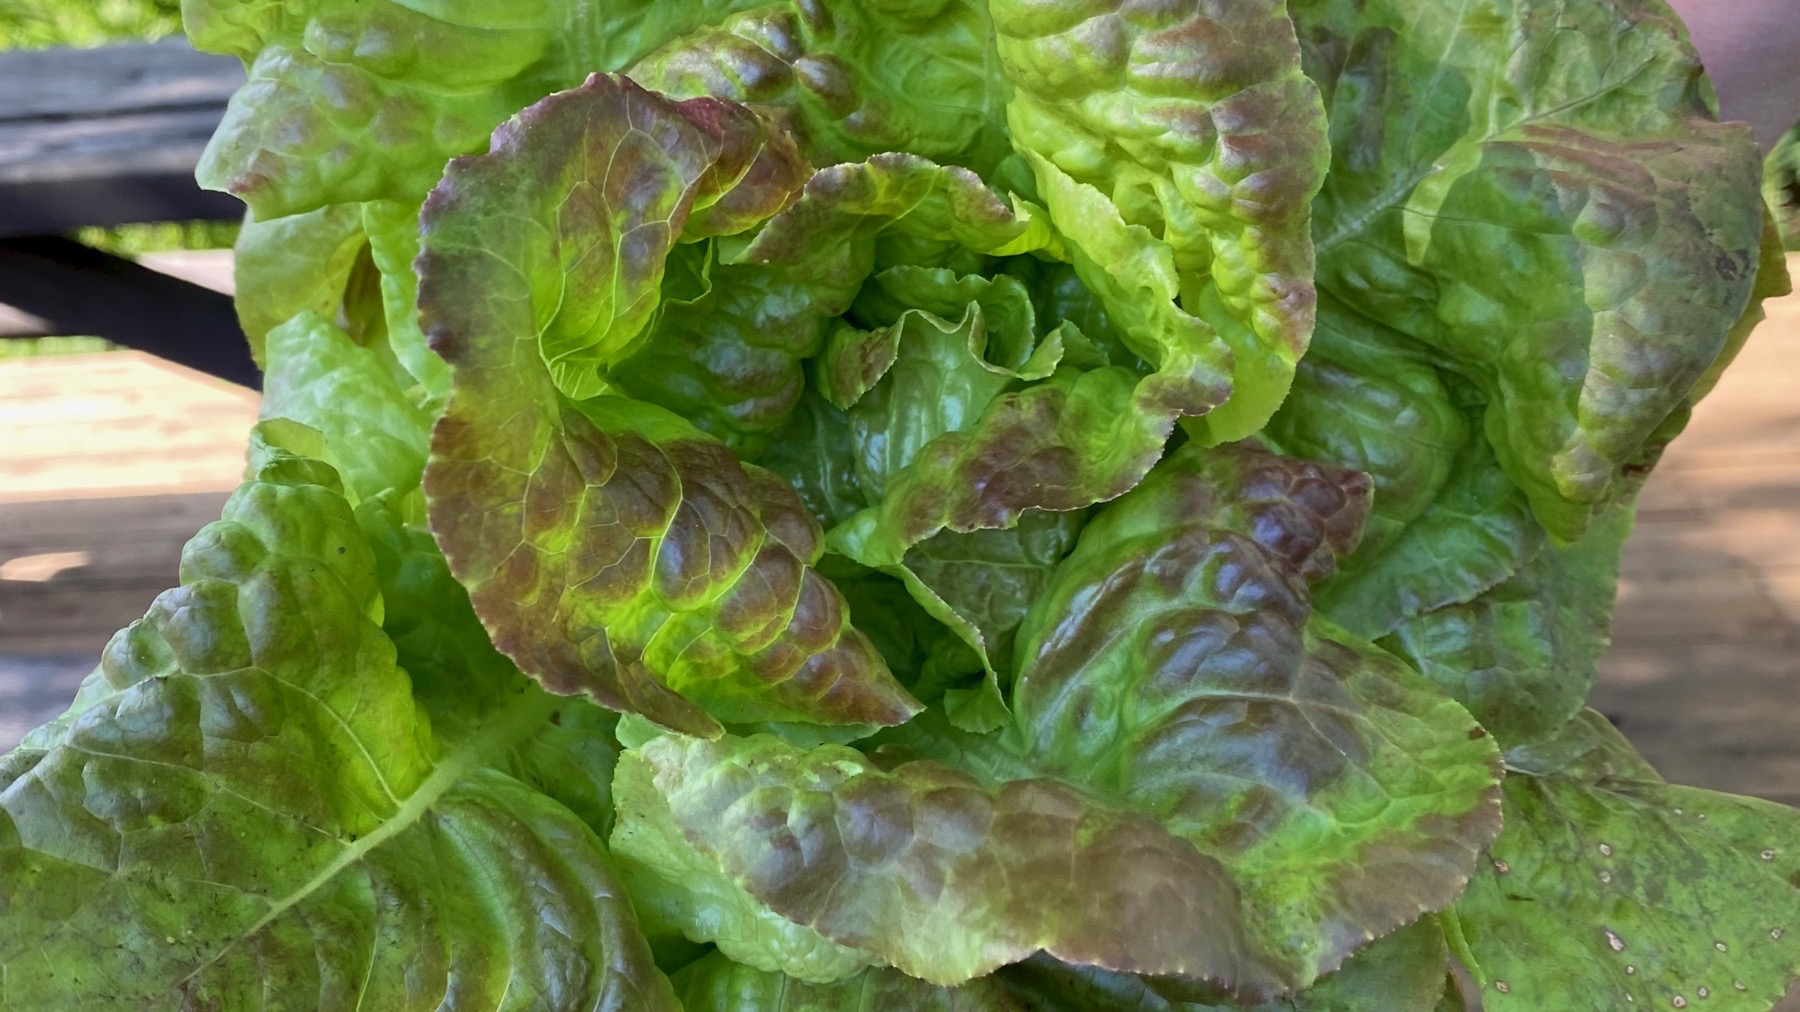 Neighbor lettuce